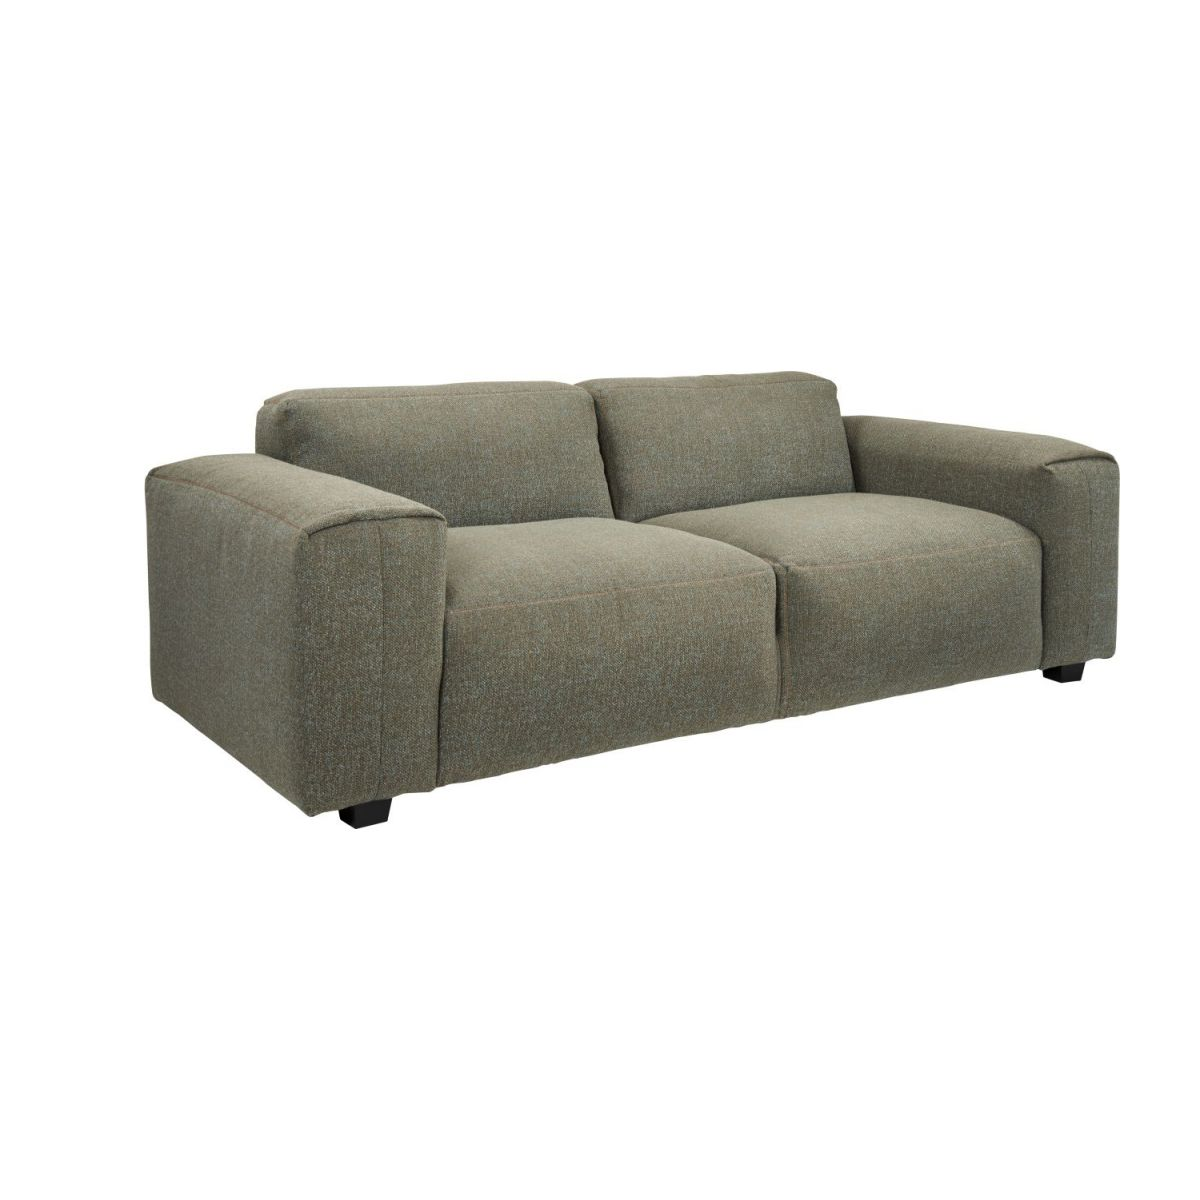 2 seater sofa in Lecce fabric, slade grey n°1